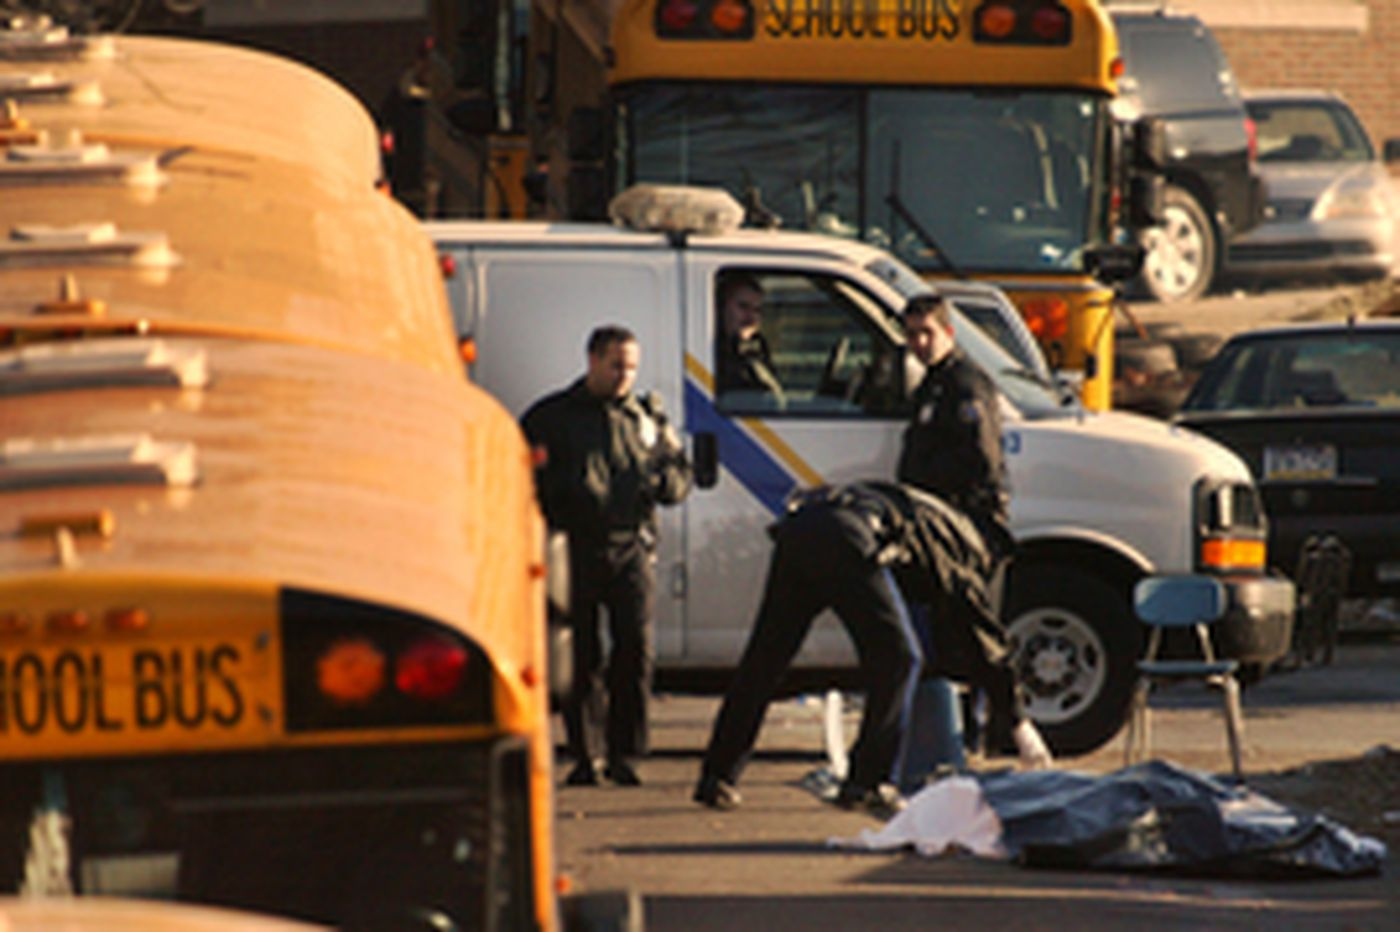 School bus hits aide, killing her